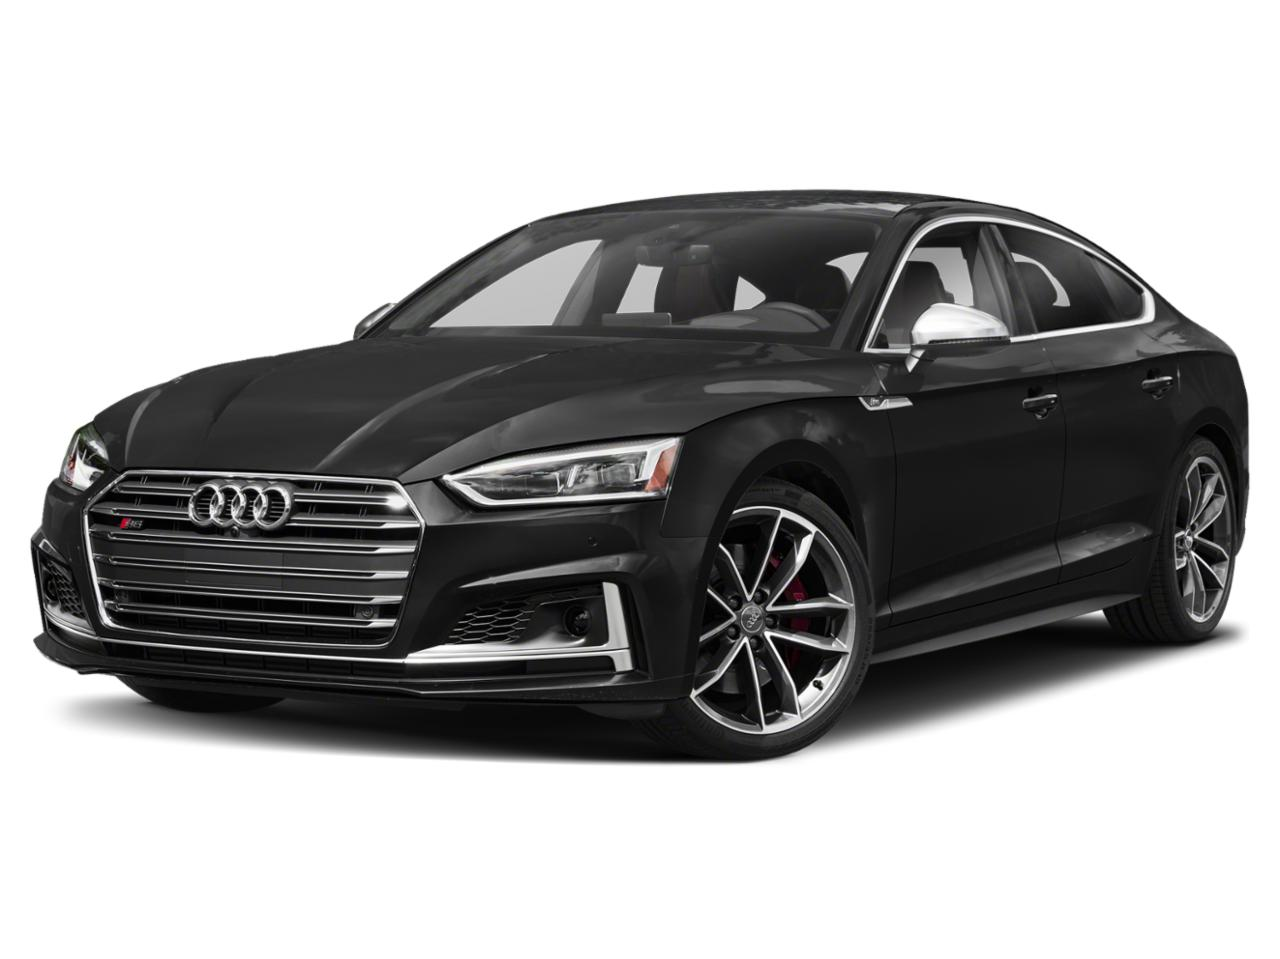 2018 Audi S5 Sportback Vehicle Photo in Allentown, PA 18103